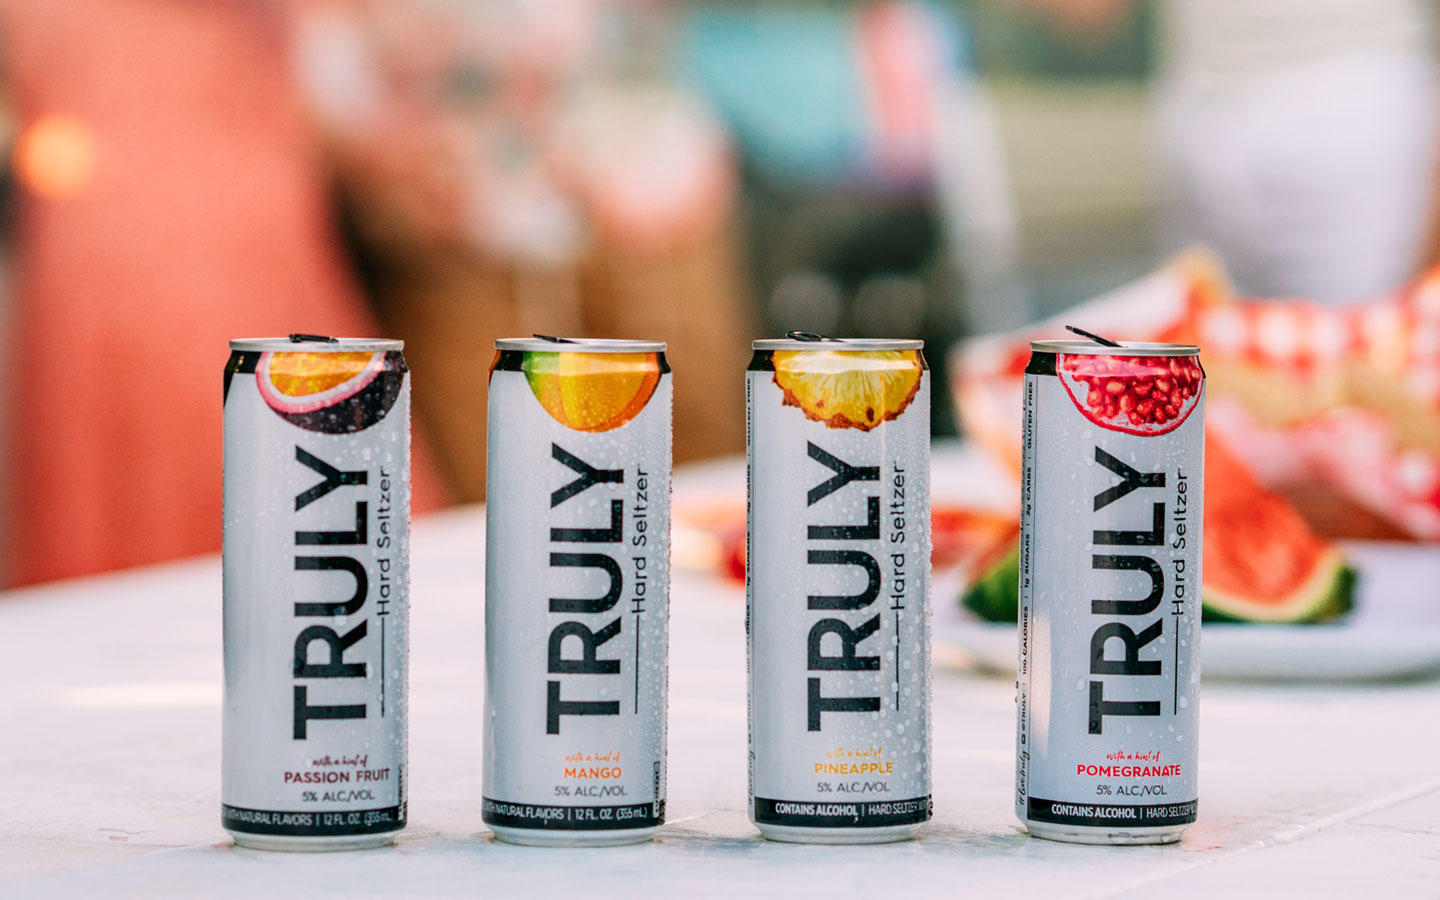 Home | Truly Hard Seltzer